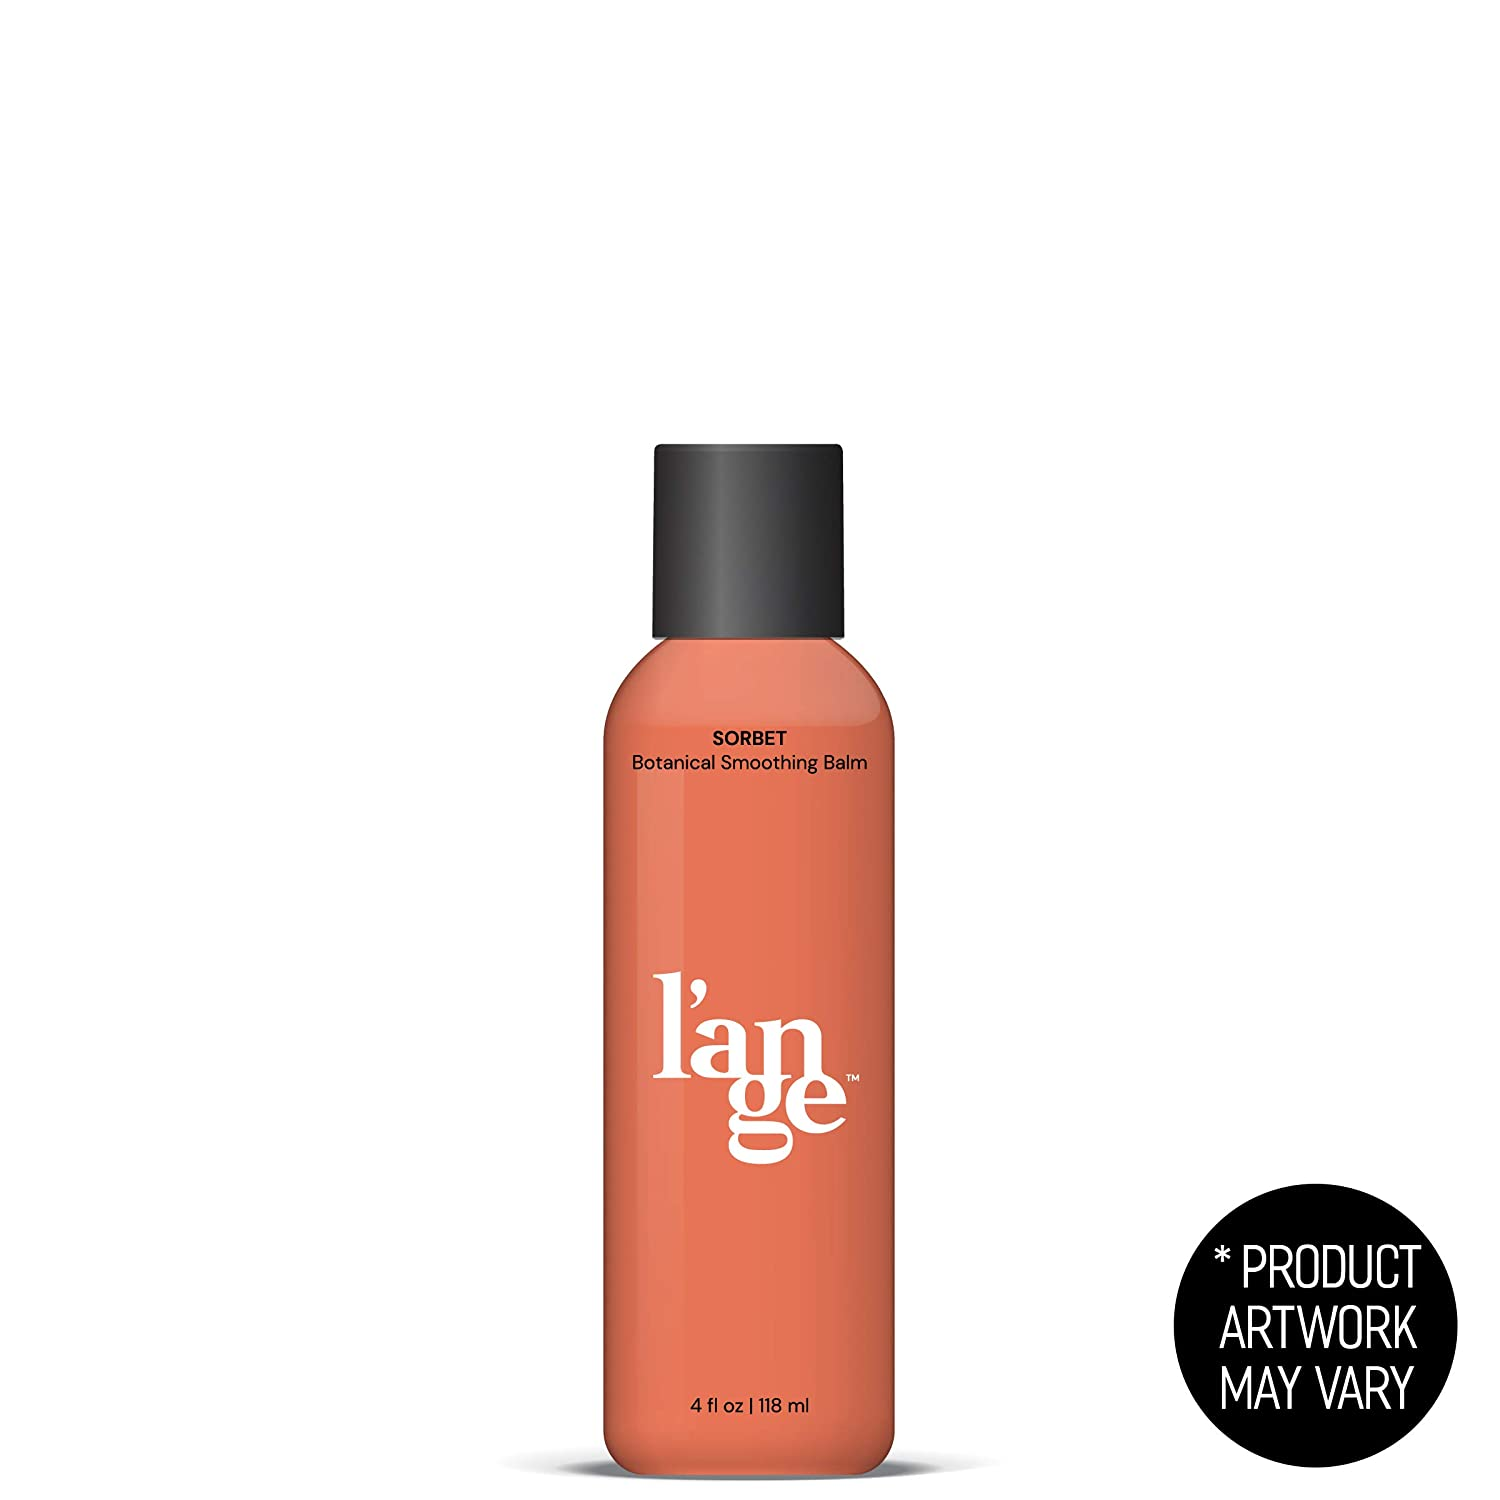 L'ange Hair Sorbet Botanical Smoothing Balm: Beauty